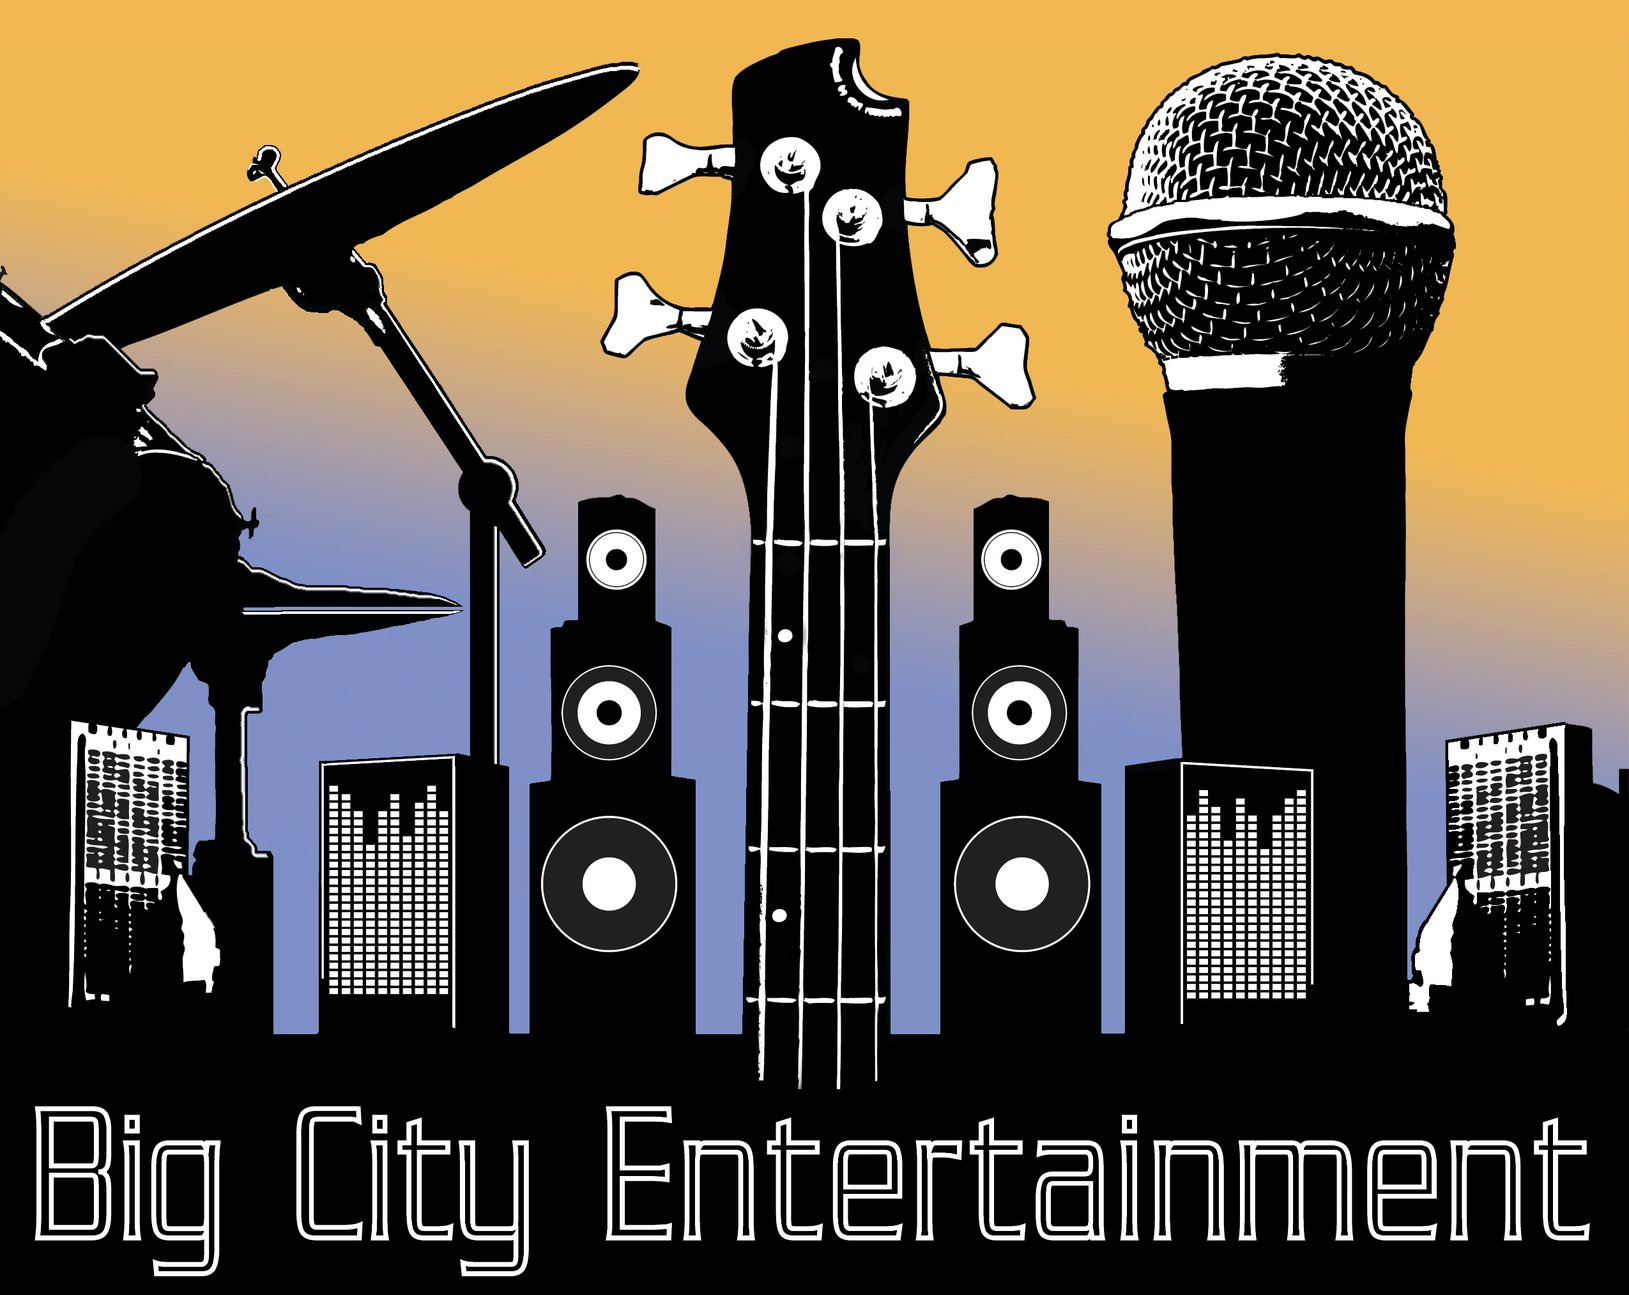 Karaoke presented by Big City Entertainment at Sport Bowl.